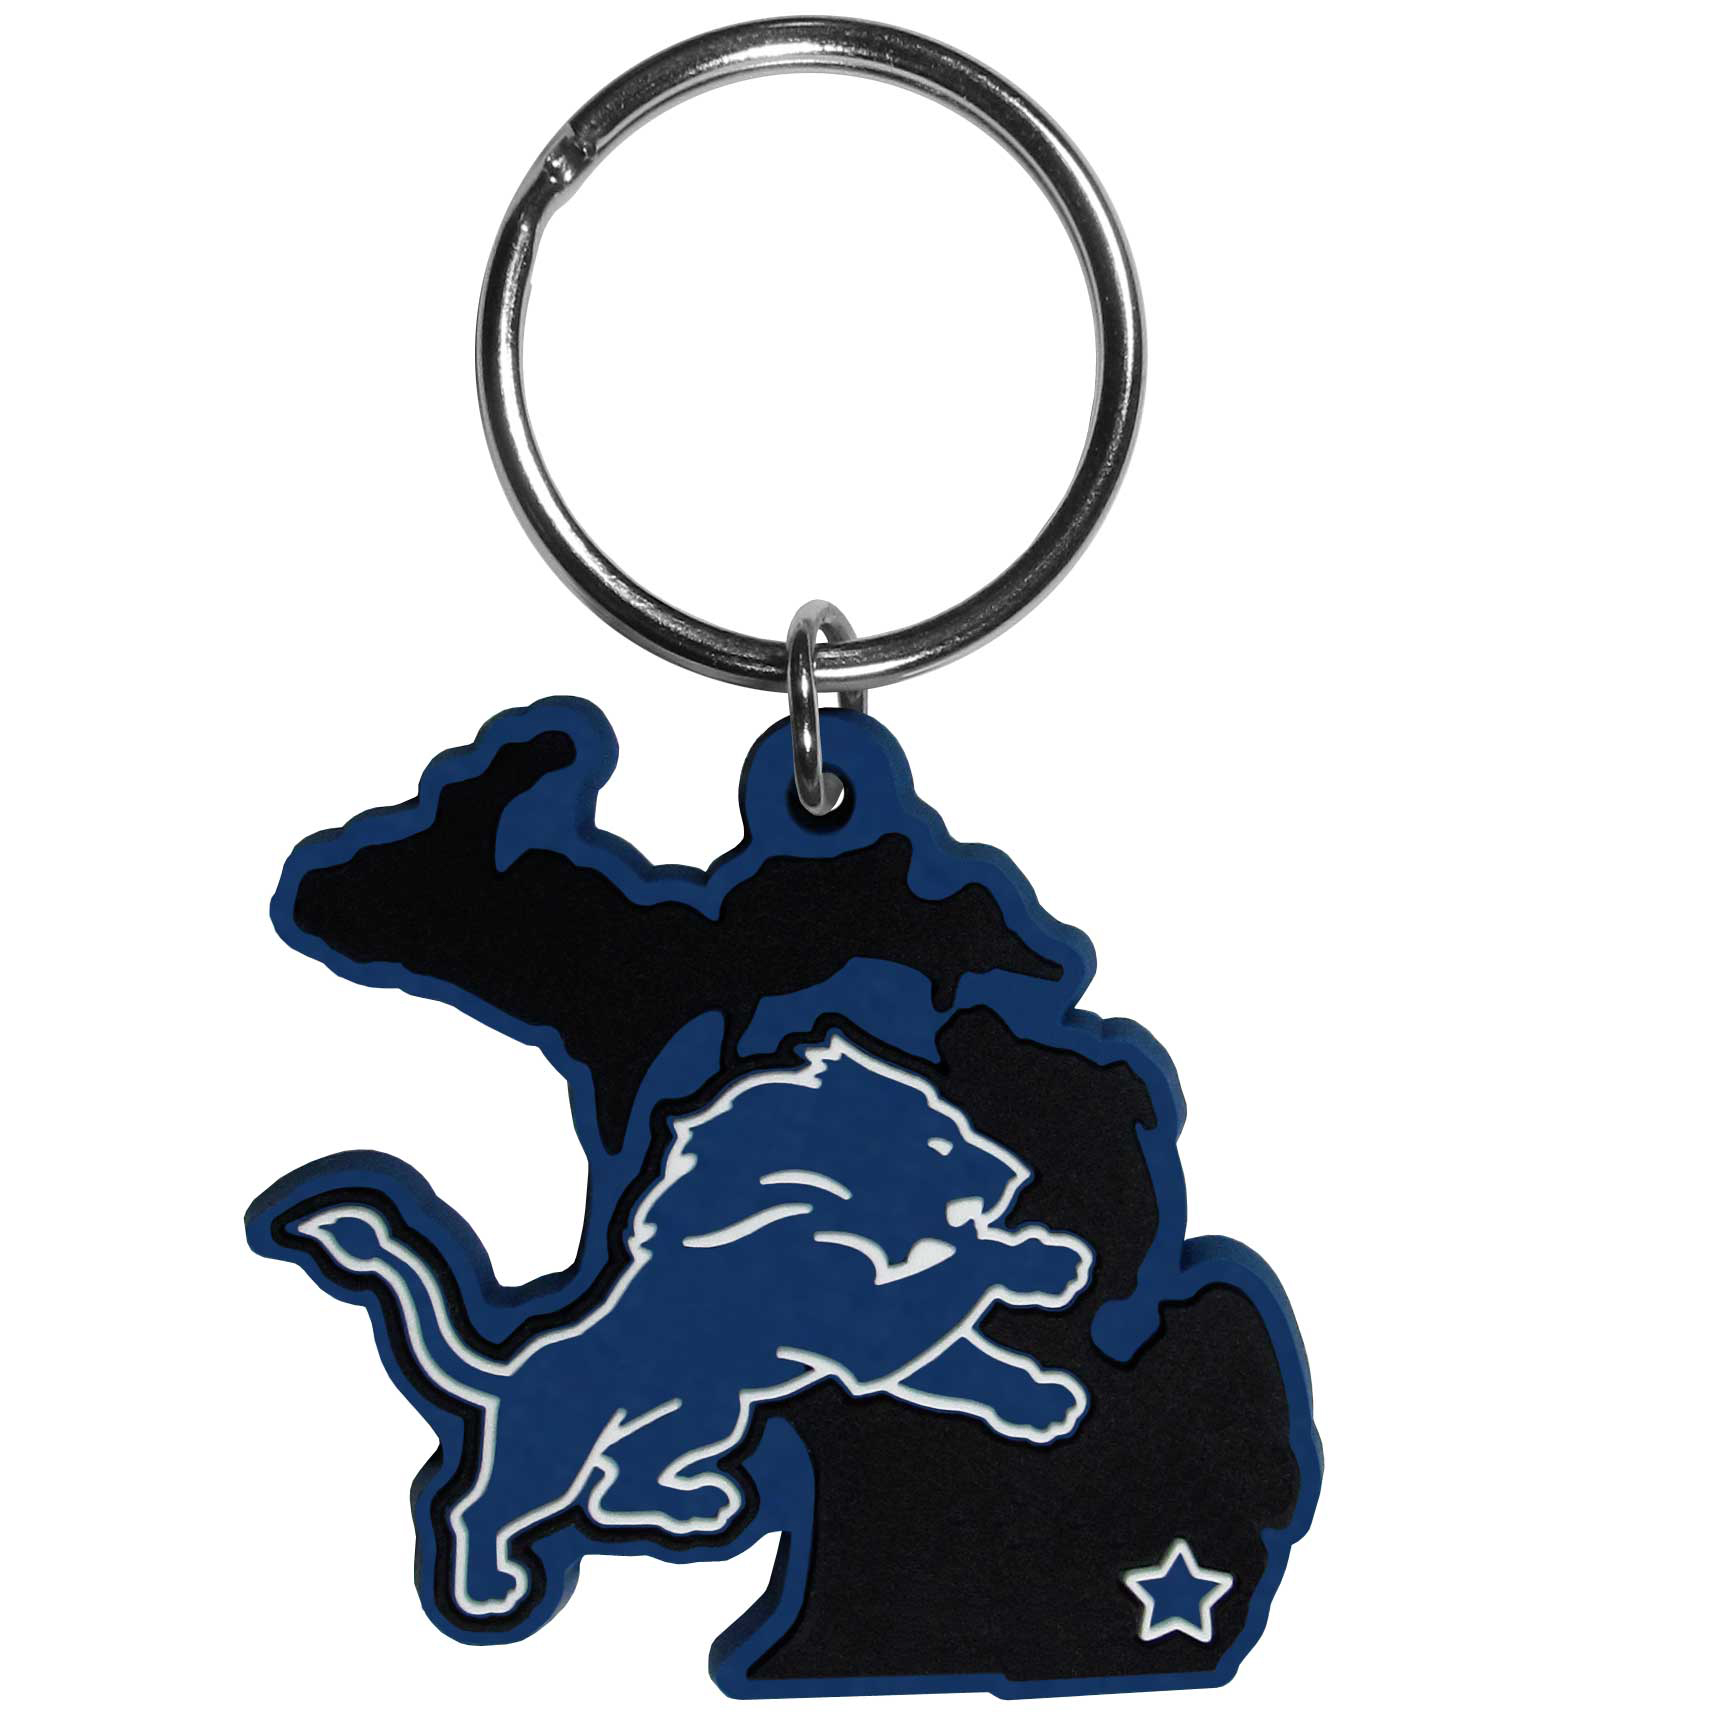 Detroit Lions Home State Flexi Key Chain - Our flexible Detroit Lions key chains are a fun way to carry your team with you. The pliable rubber material is extremely durable and is the layered colors add a great 3D look to the key chain. This is really where quality and a great price meet to create a true fan favorite.